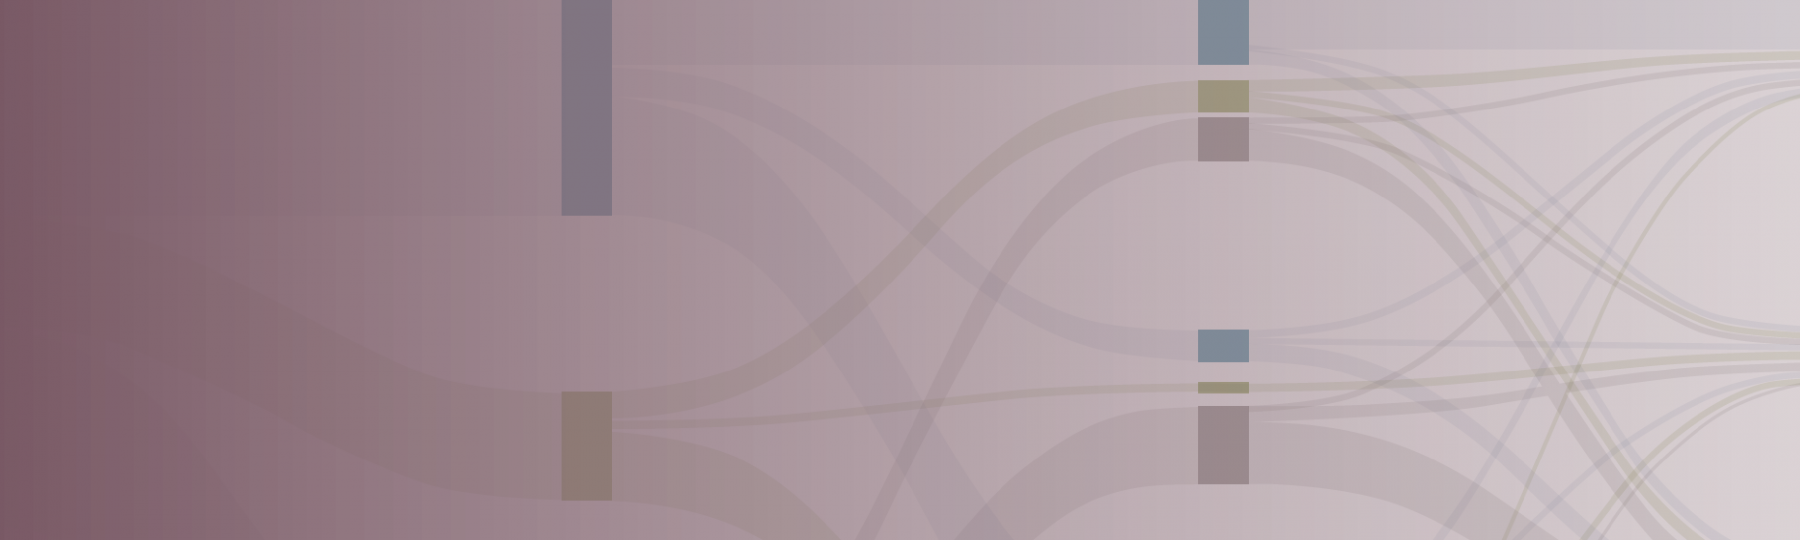 Screenshot of Sankey diagram on the cover of the report with a purple color gradient on top